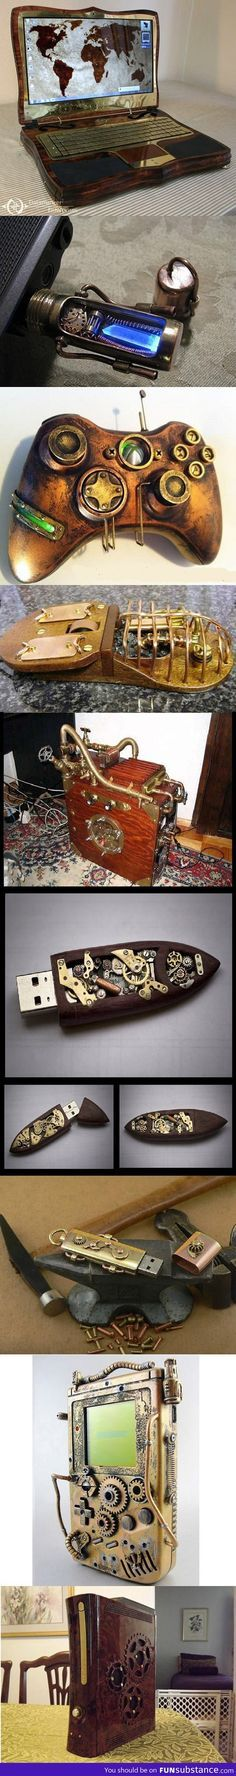 Steampunk gadgets <3 I blame Bioshock and Dishonored for creating my love of anything steampunk or biopunk!